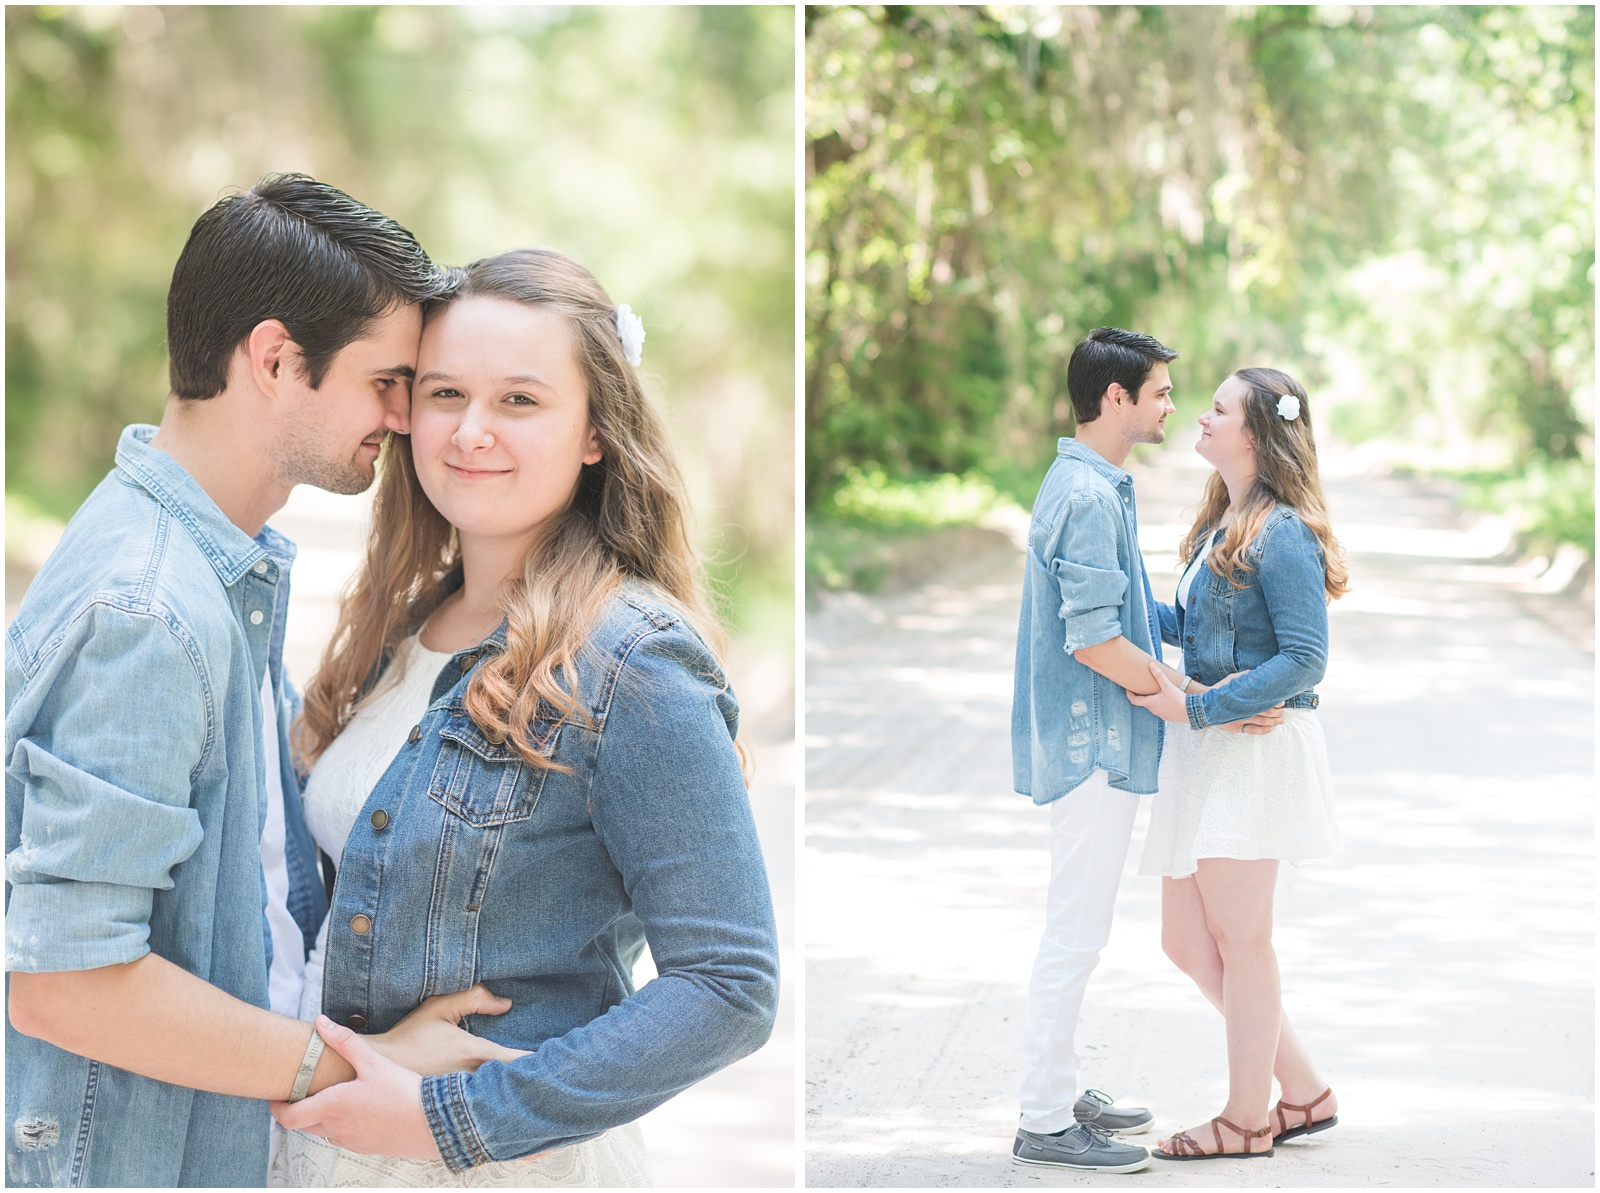 Fort White_Florida_Outdoor_Engagement_Portraits_3.jpg